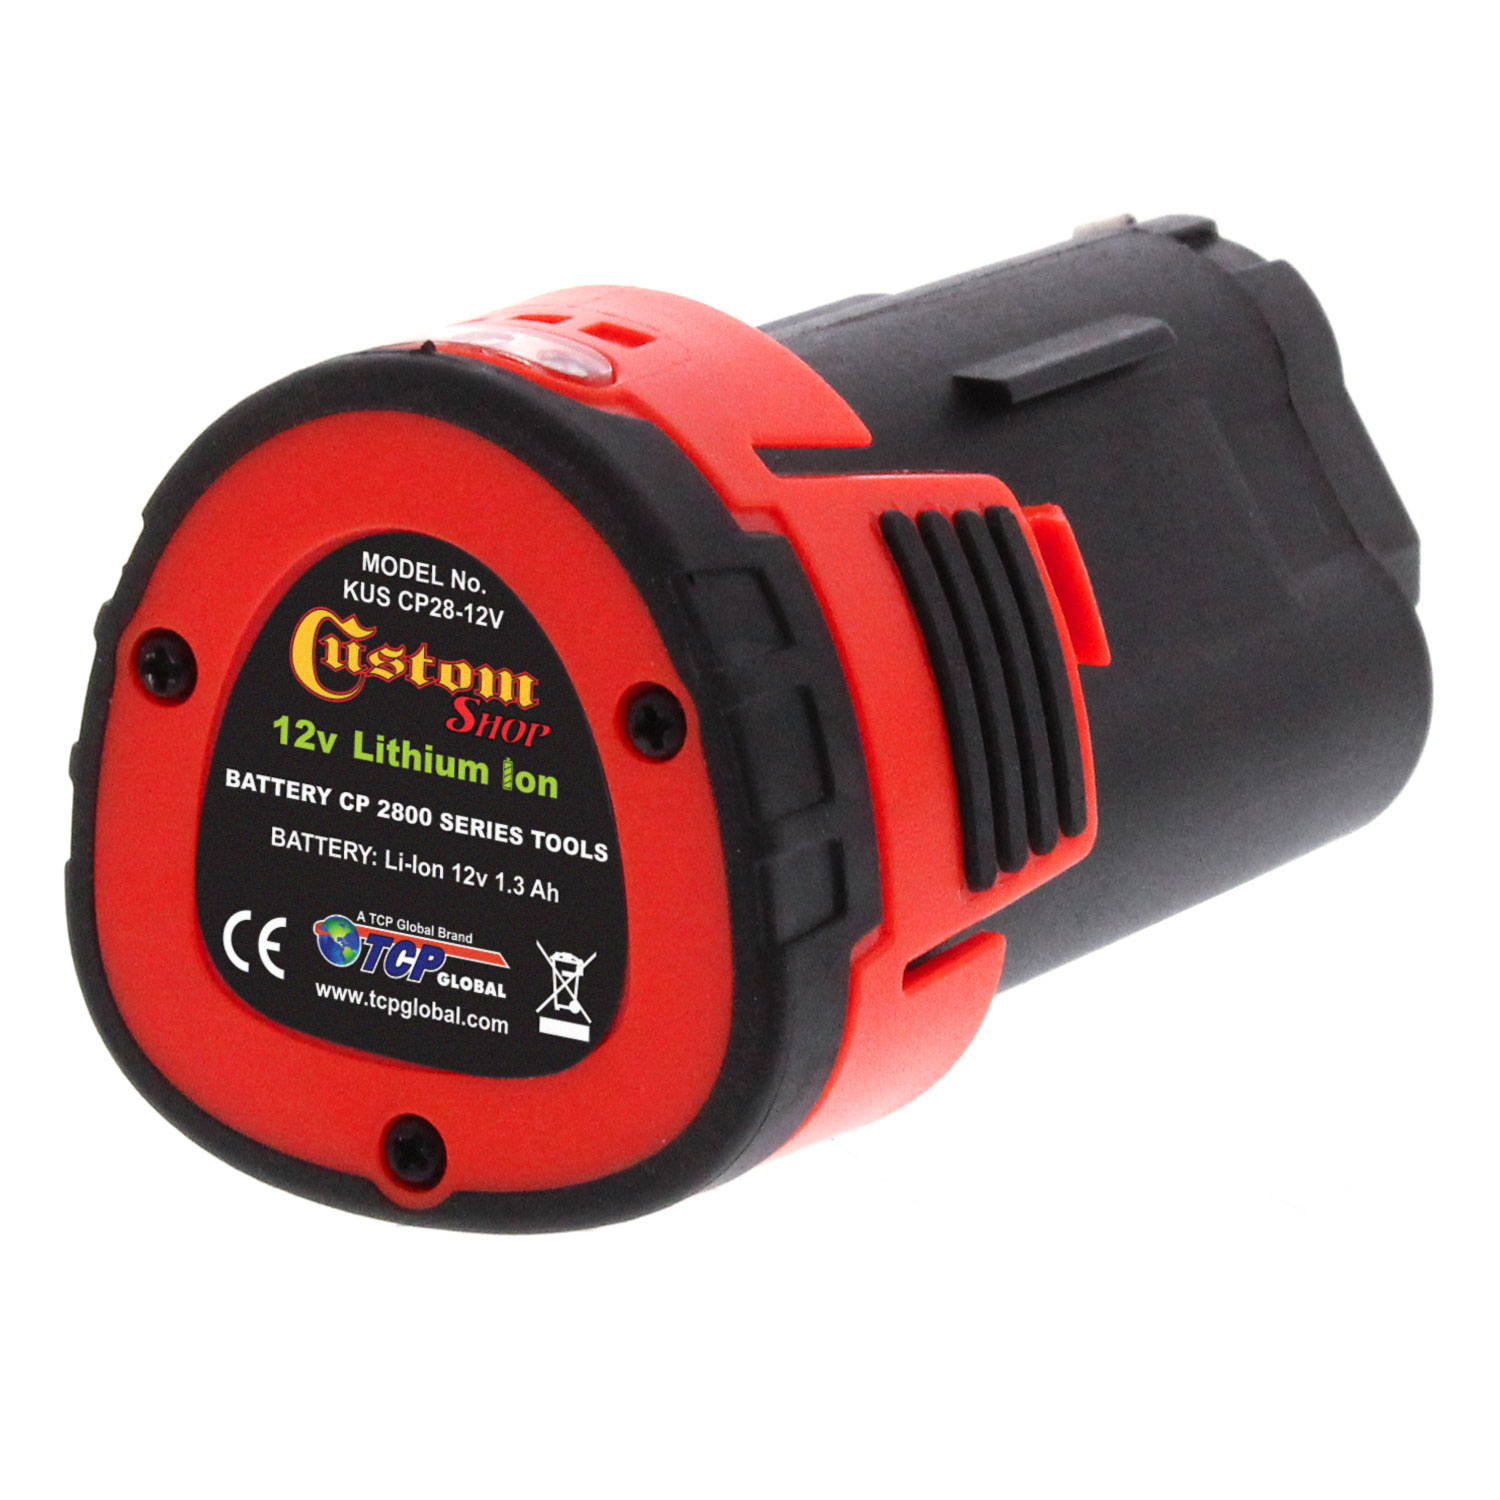 "Custom Shop CP28-12V 12 Volt Lithium-Ion Battery - Only Fits Model P2800 Professional 3"" Cordless Mini Rotary Polisher"